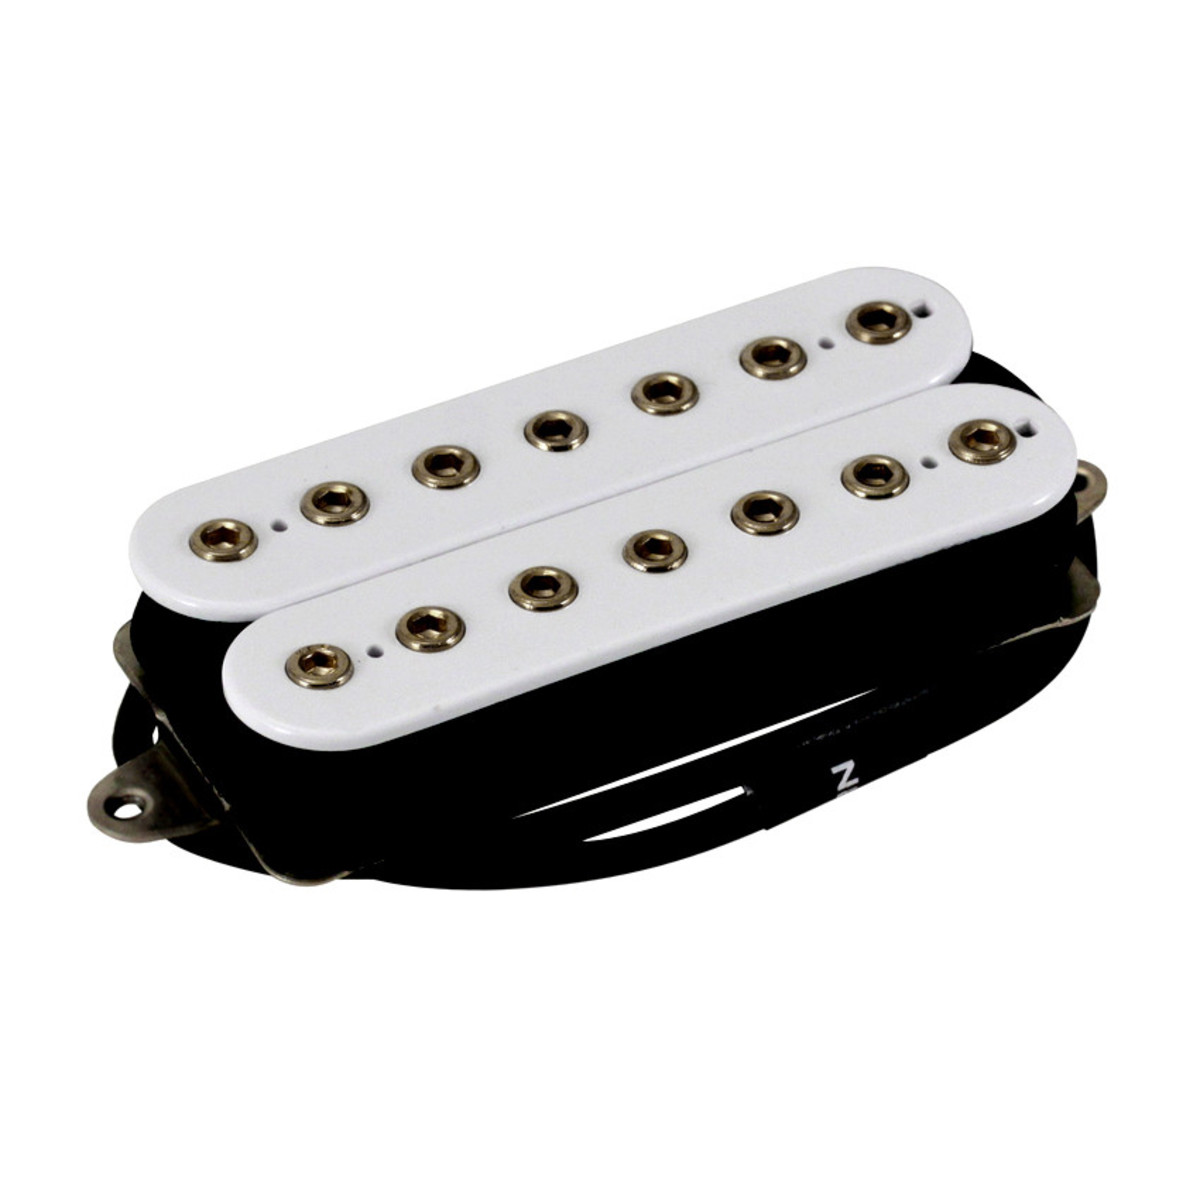 dimarzio dp755 the tone zone 7 string humbucker guitar pickup white at gear4music. Black Bedroom Furniture Sets. Home Design Ideas